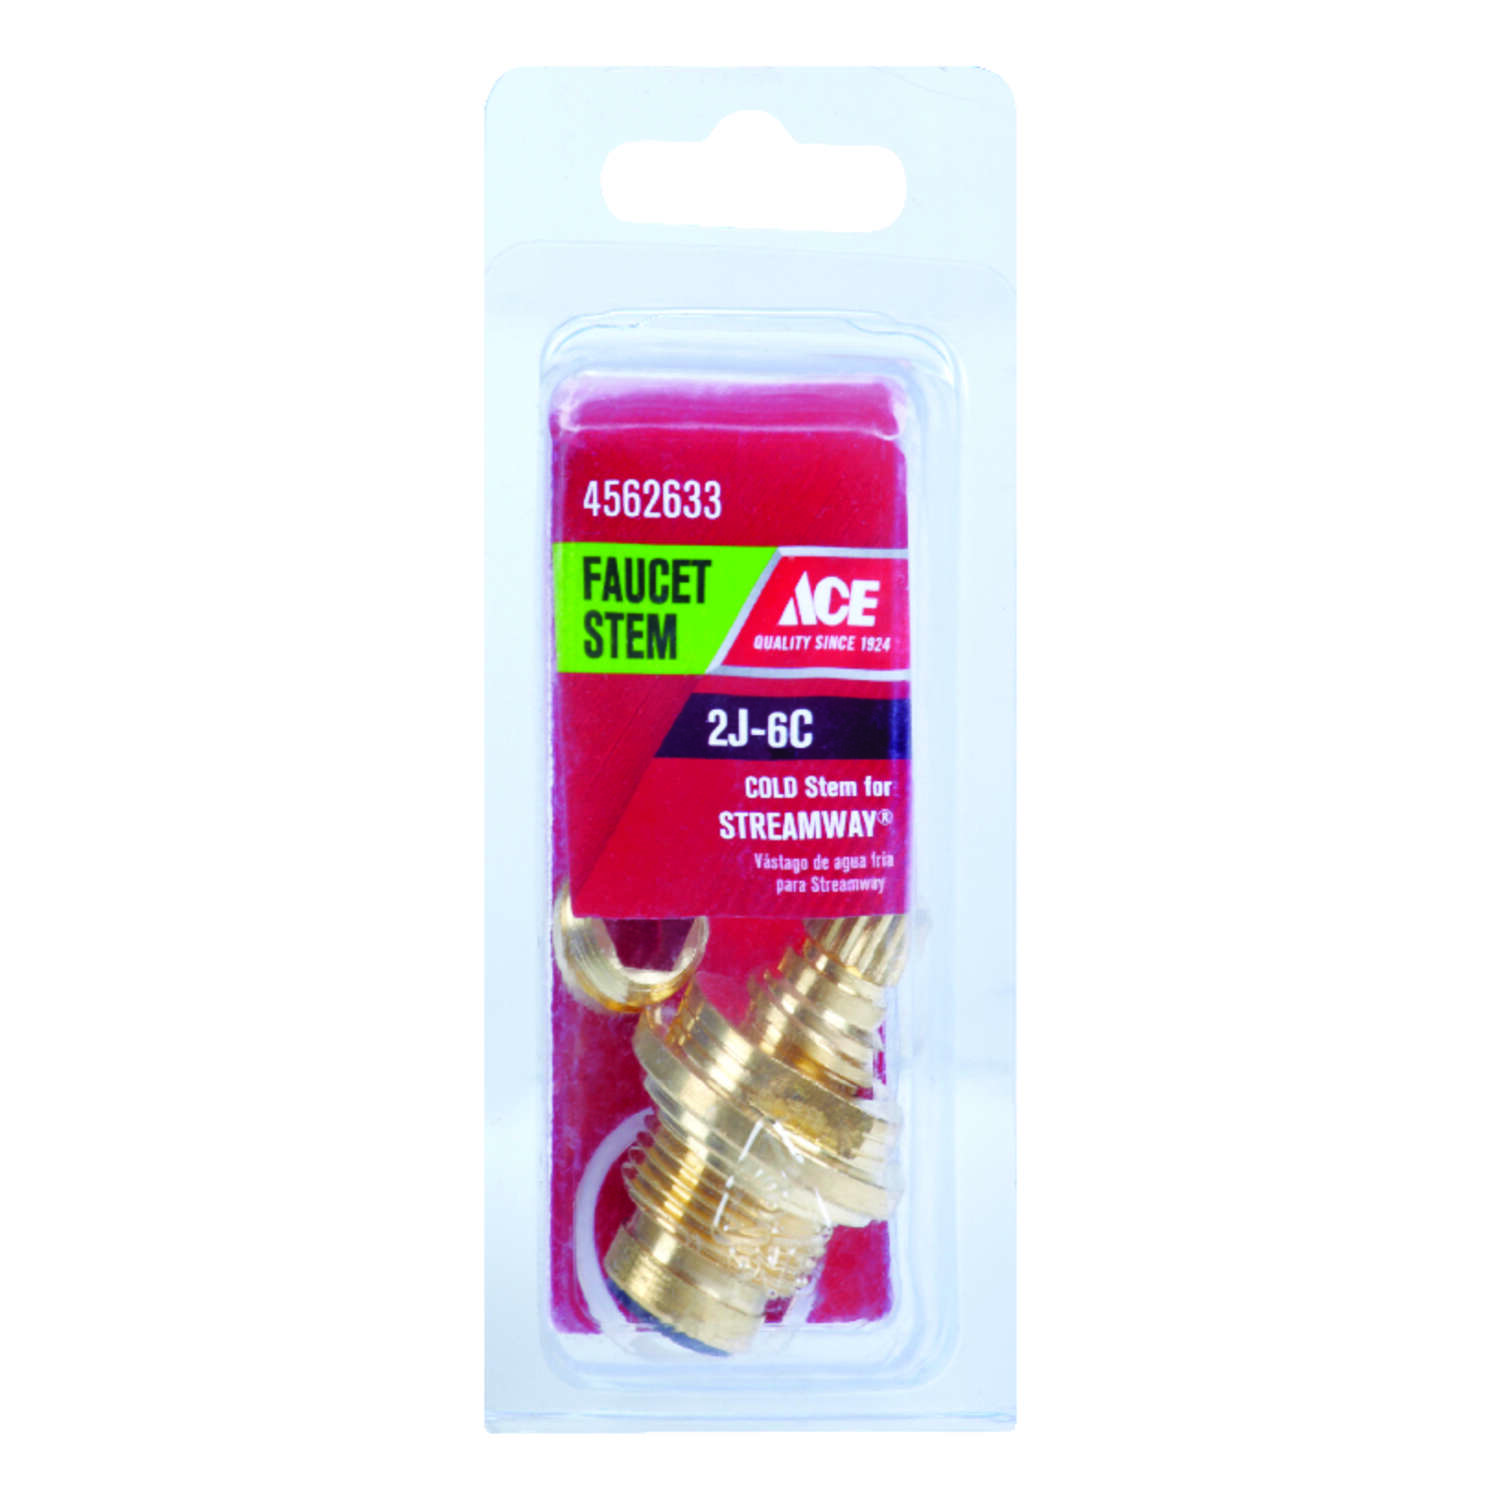 Ace  Low Lead  Cold  2J-6C  Faucet Stem  For Streamway